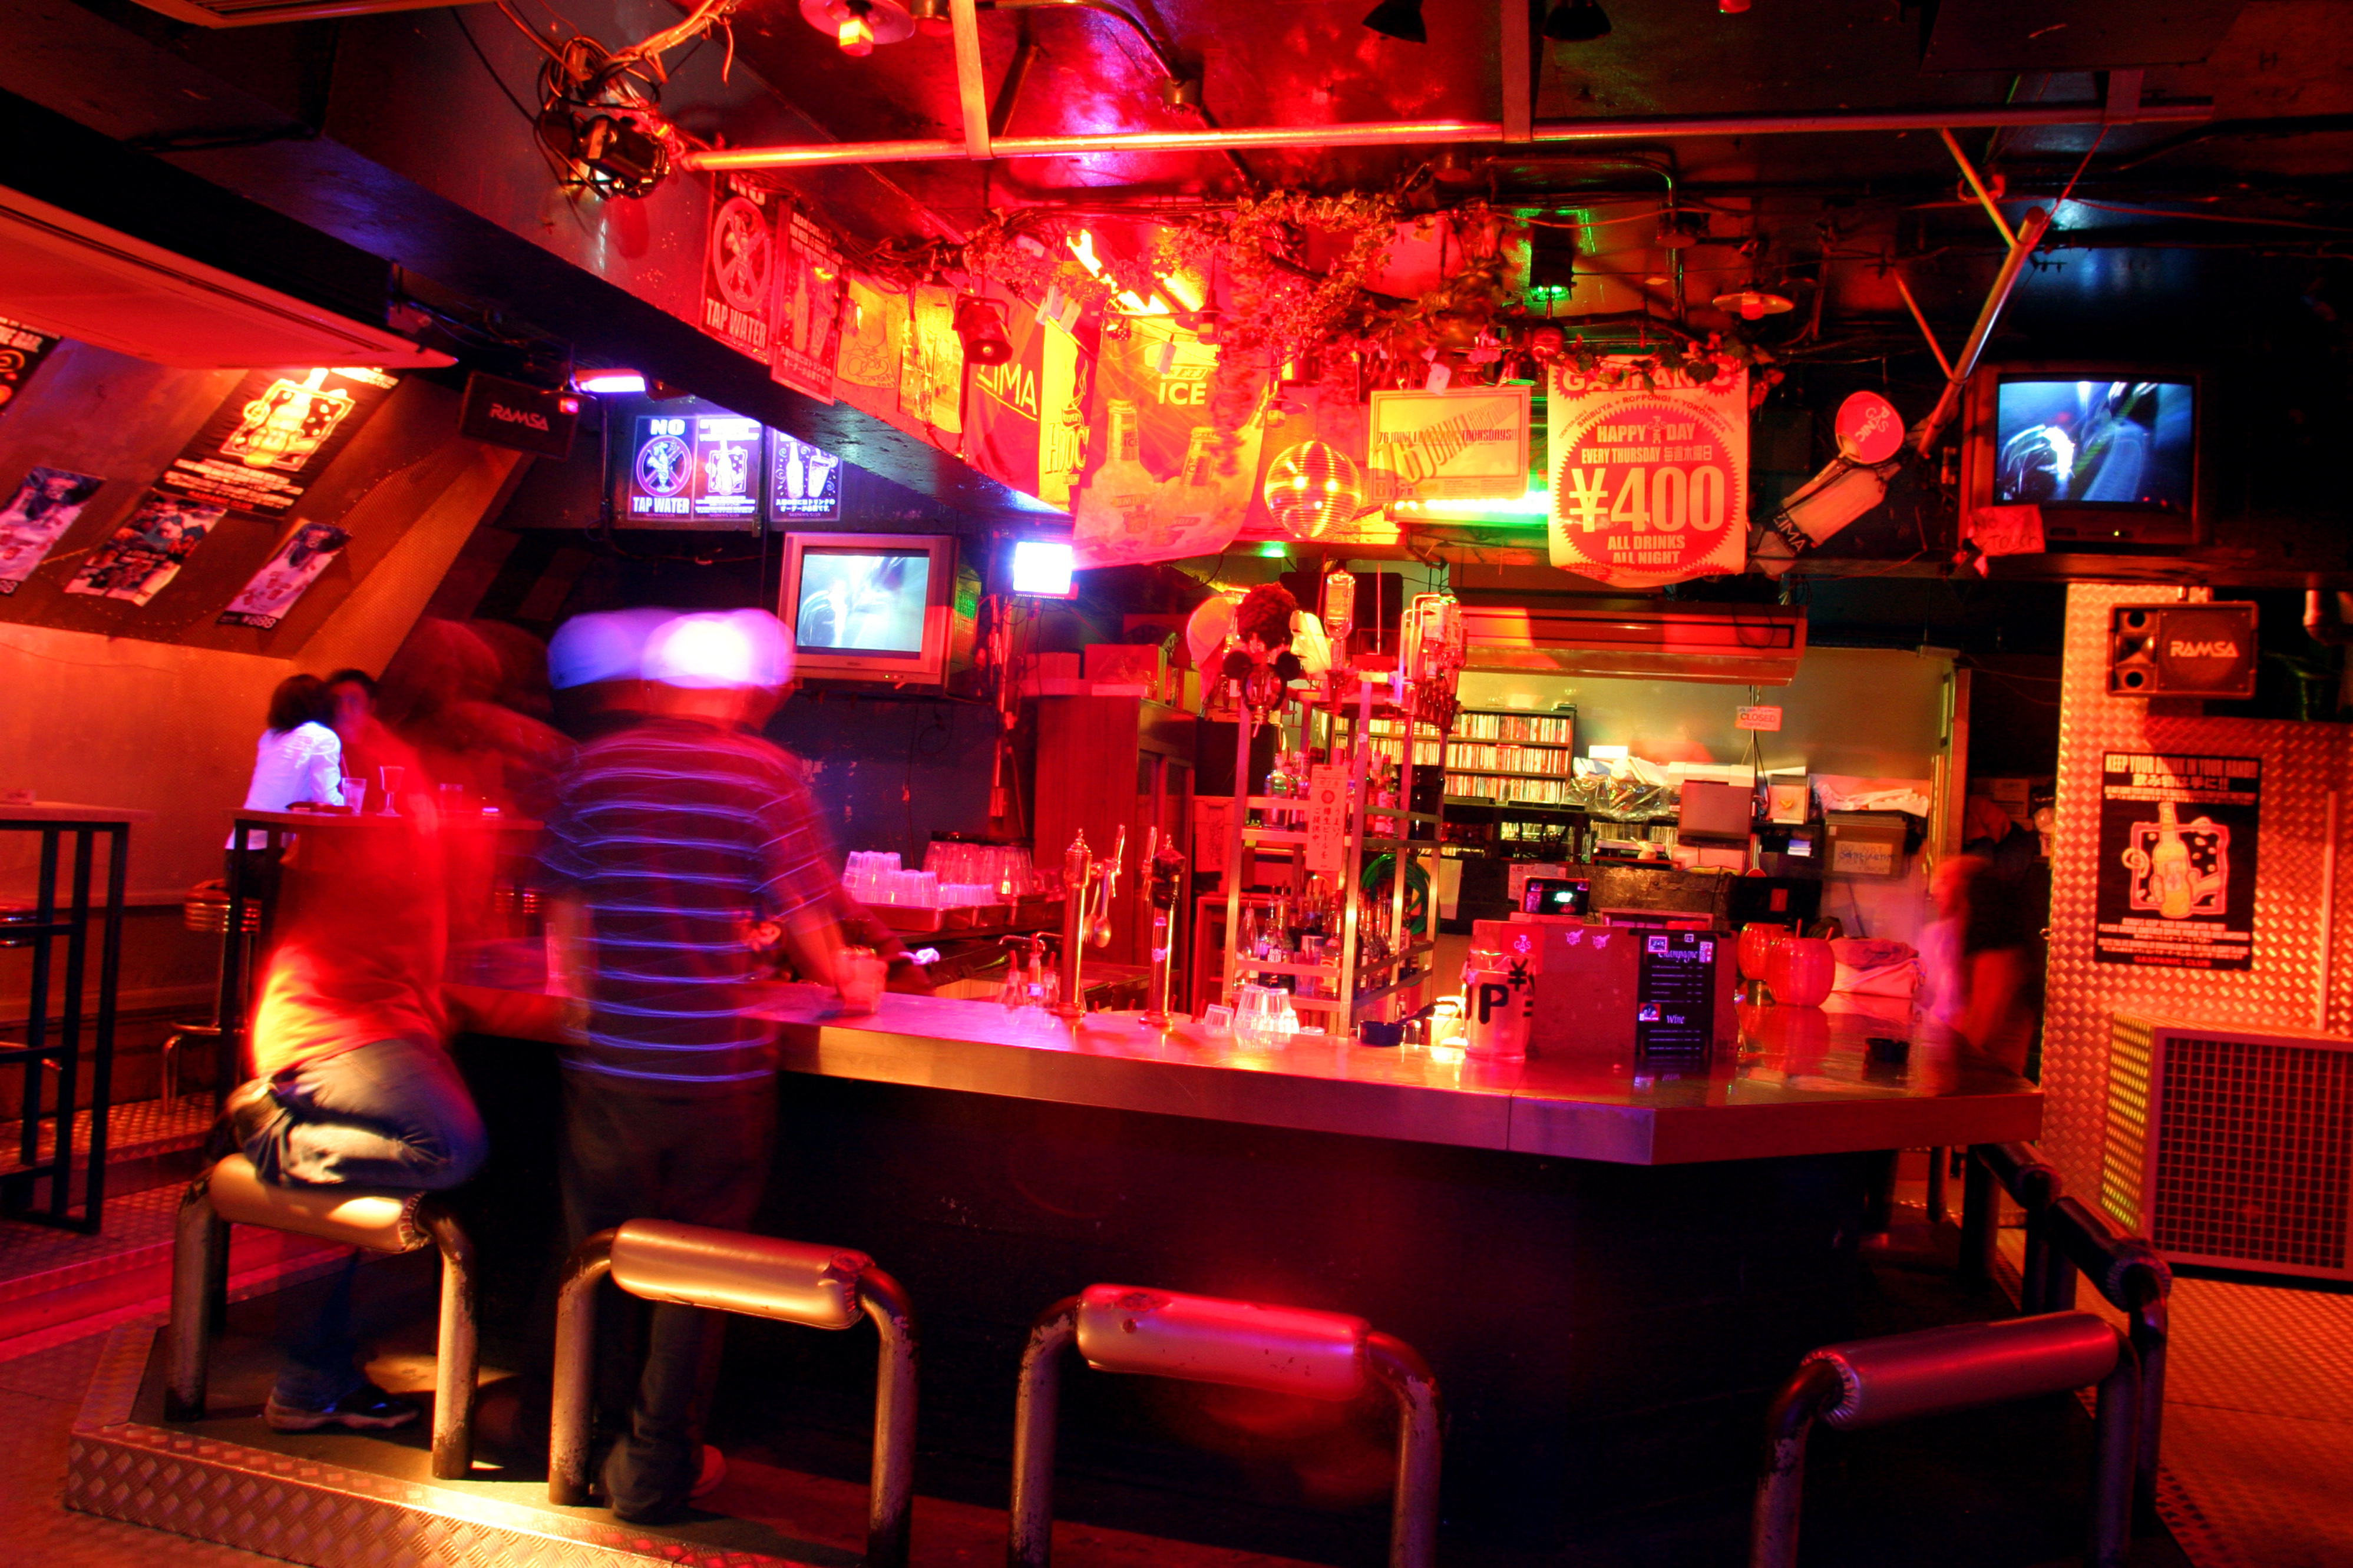 A bar in the Roppongi district, Tokyo.